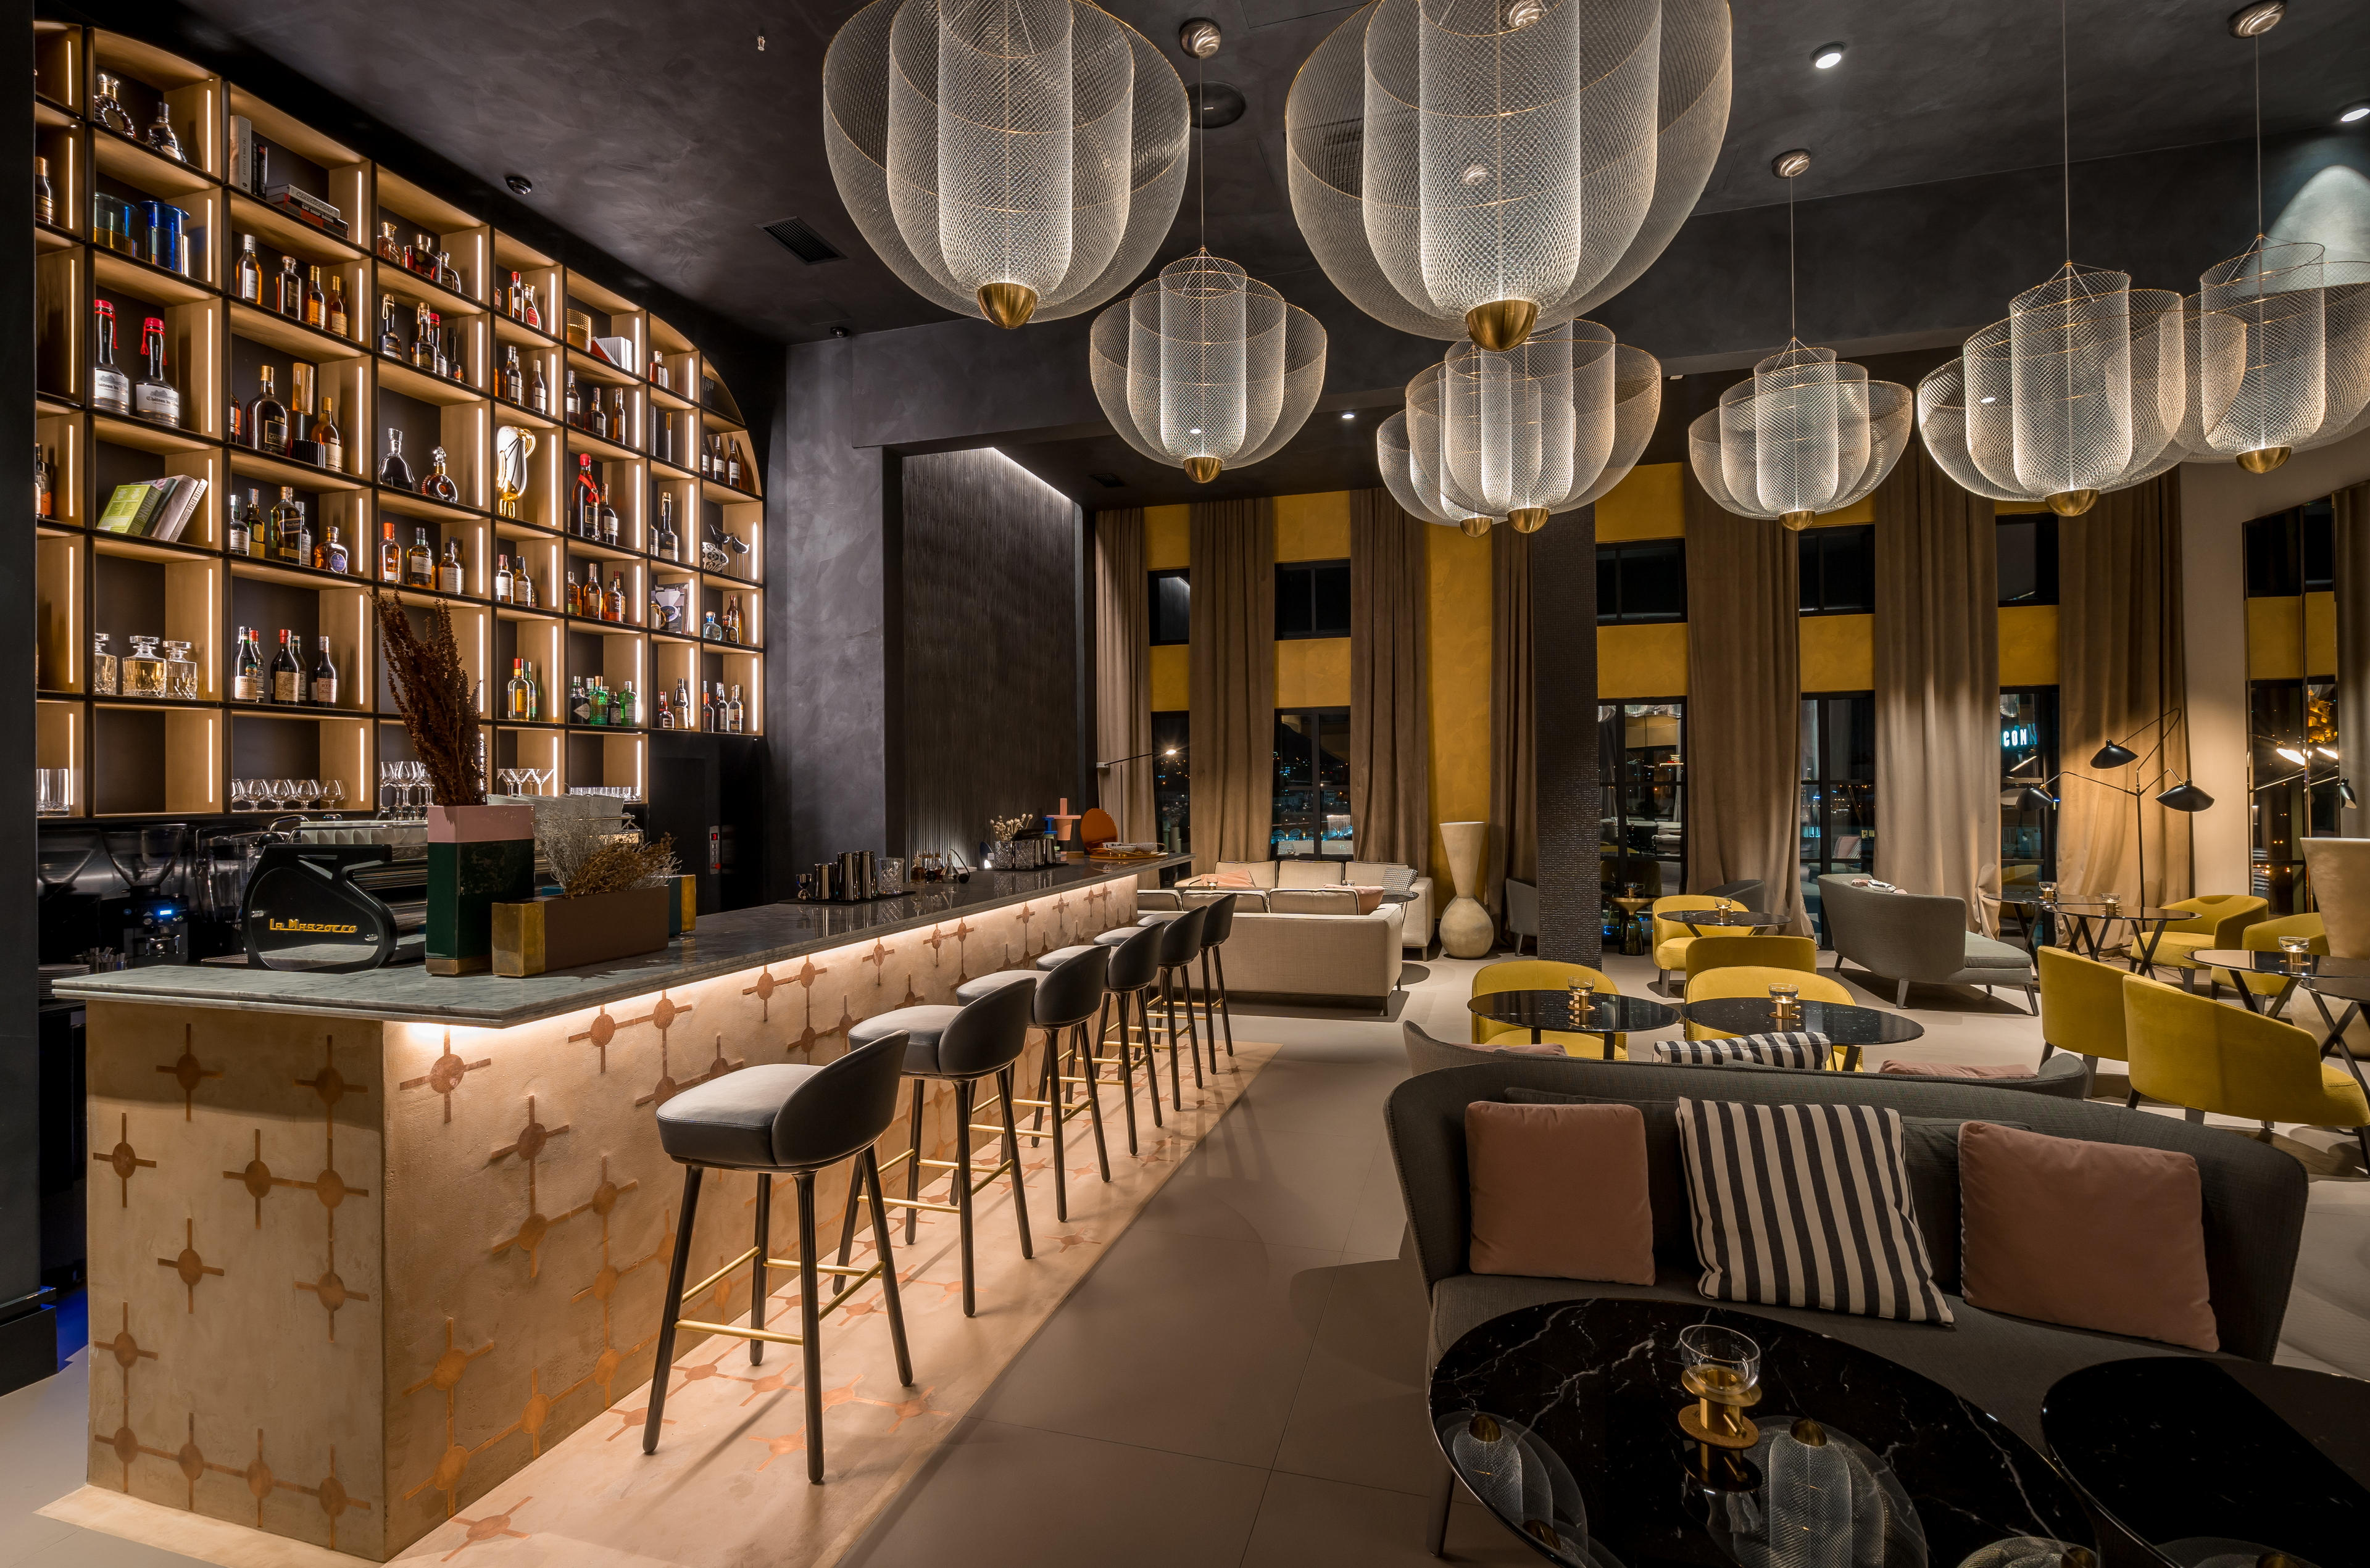 Monograph Lounge bar, Tbilisi by Motif Design Elements, Proact.e and Studio Irvine, made with TerraTon Wall Smooth Plus Polvere with TerraFrame inserts